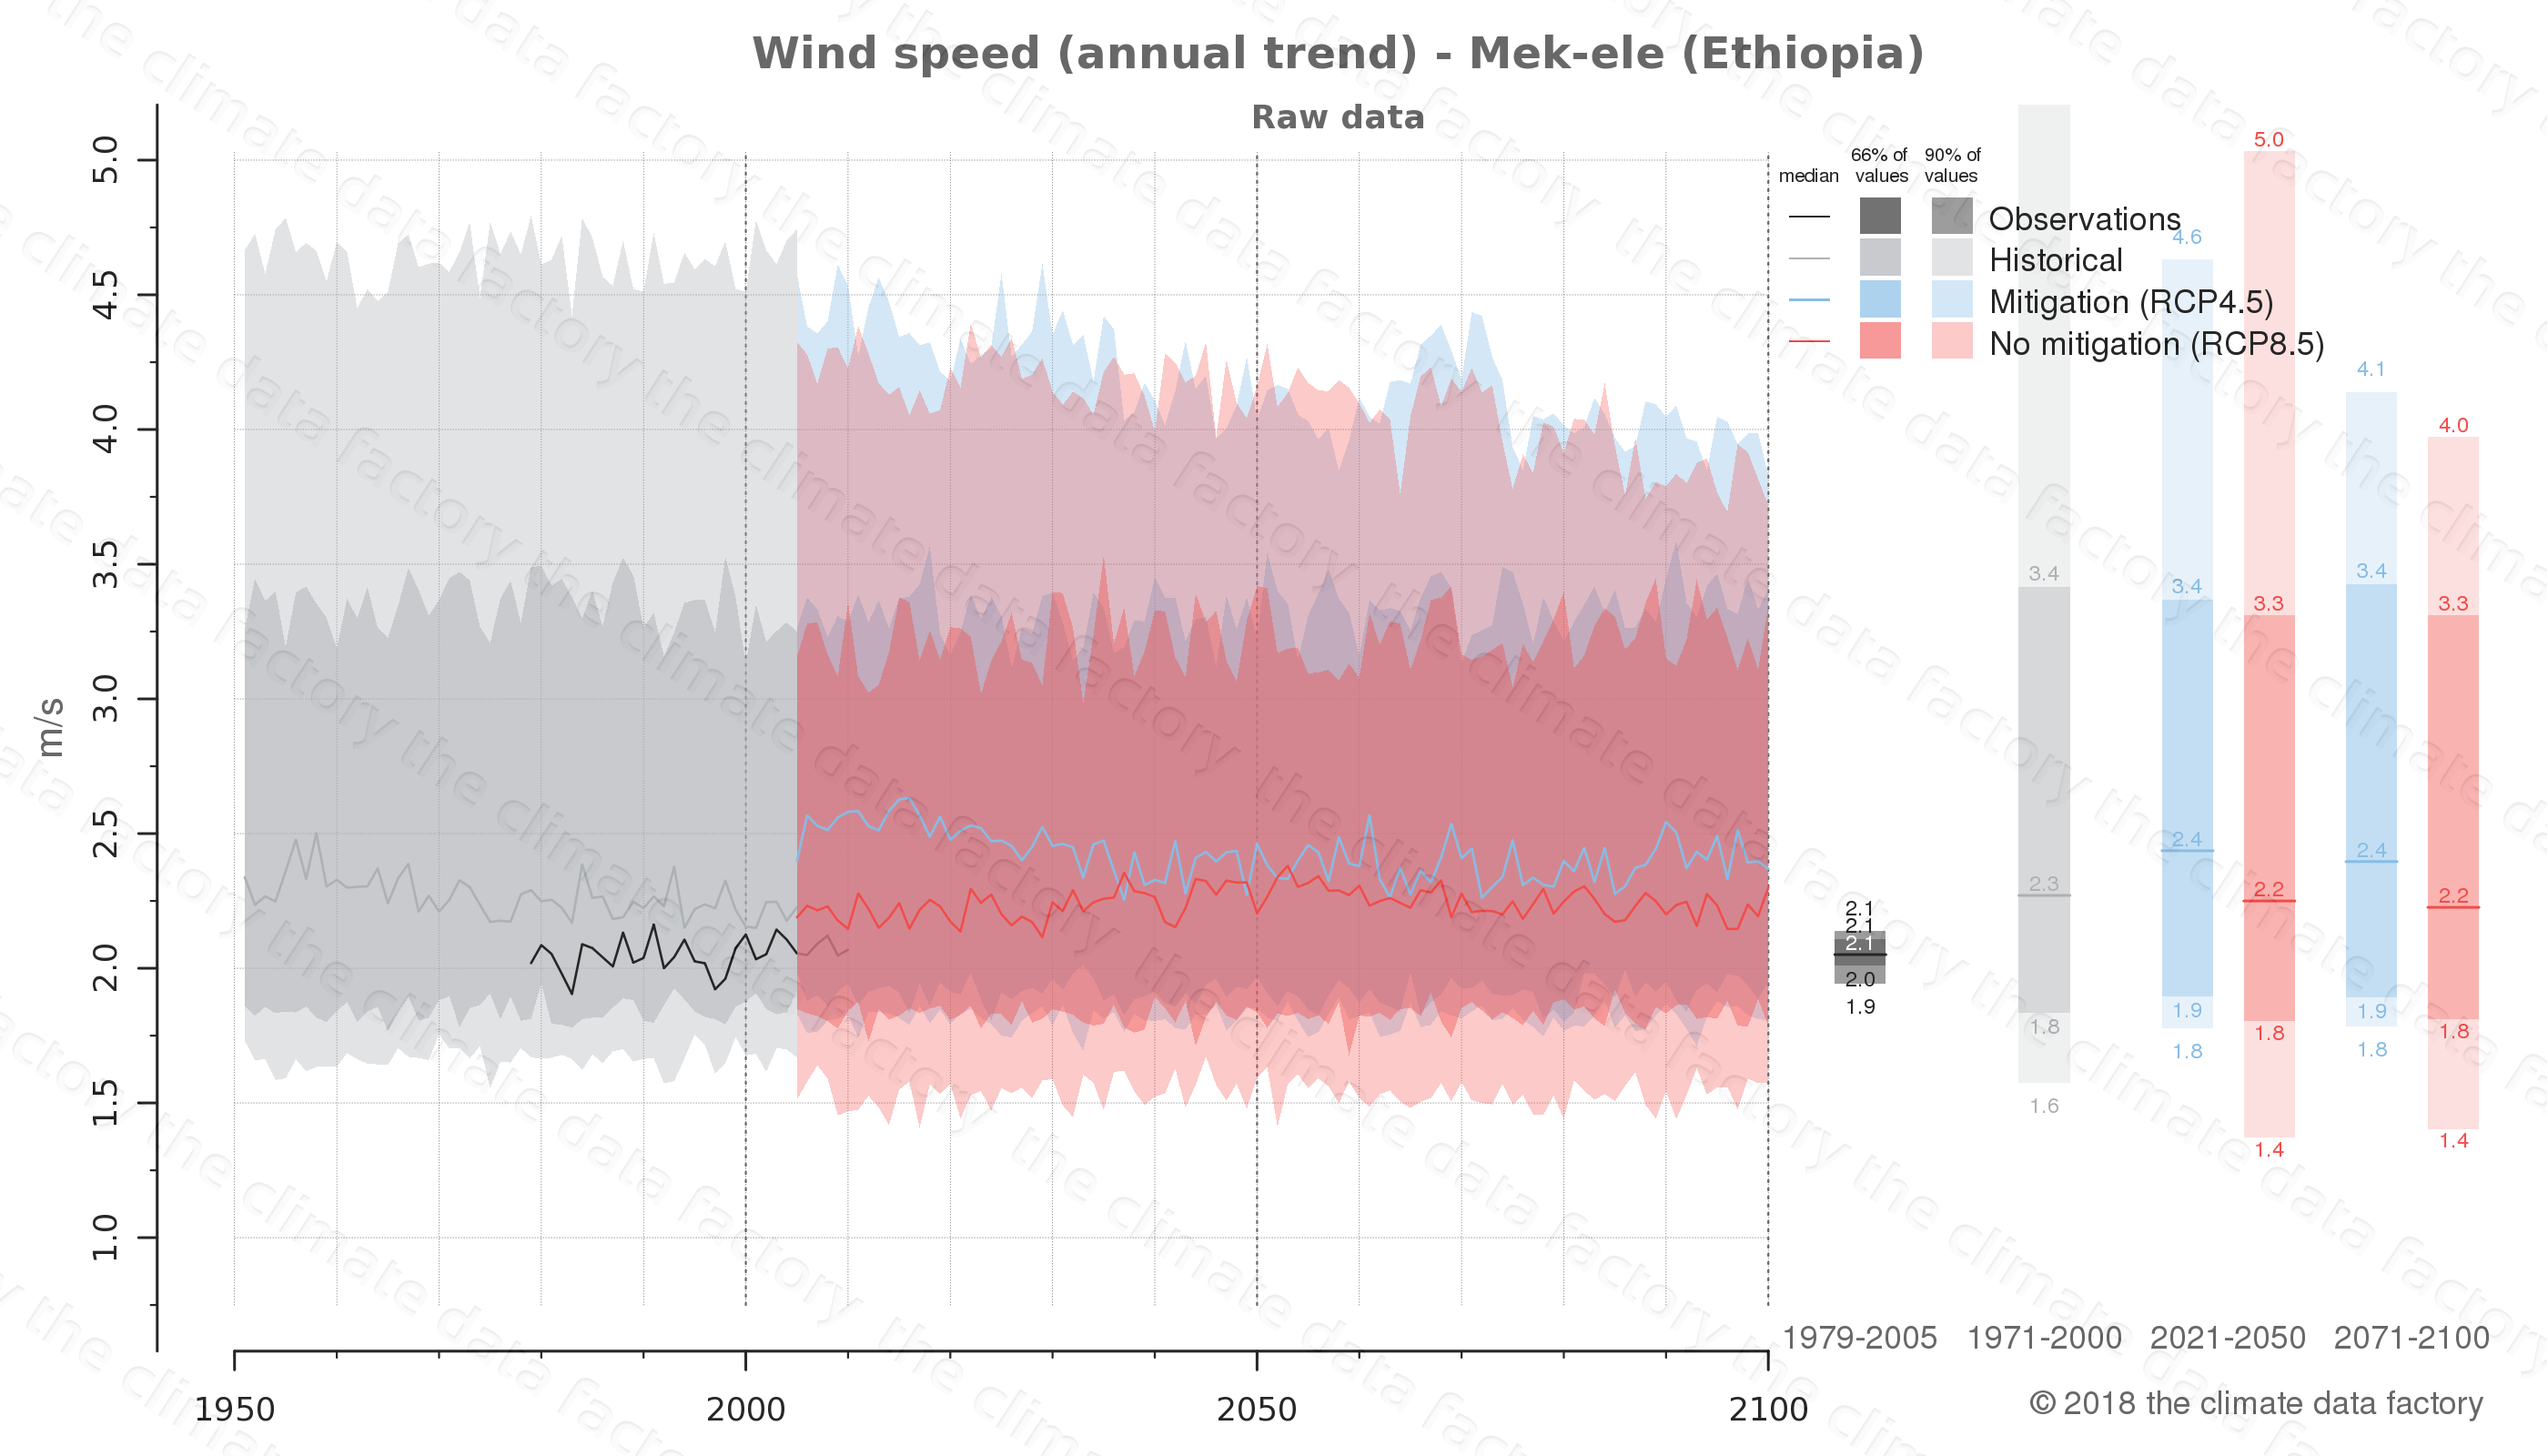 climate change data policy adaptation climate graph city data wind-speed mek-ele ethiopia